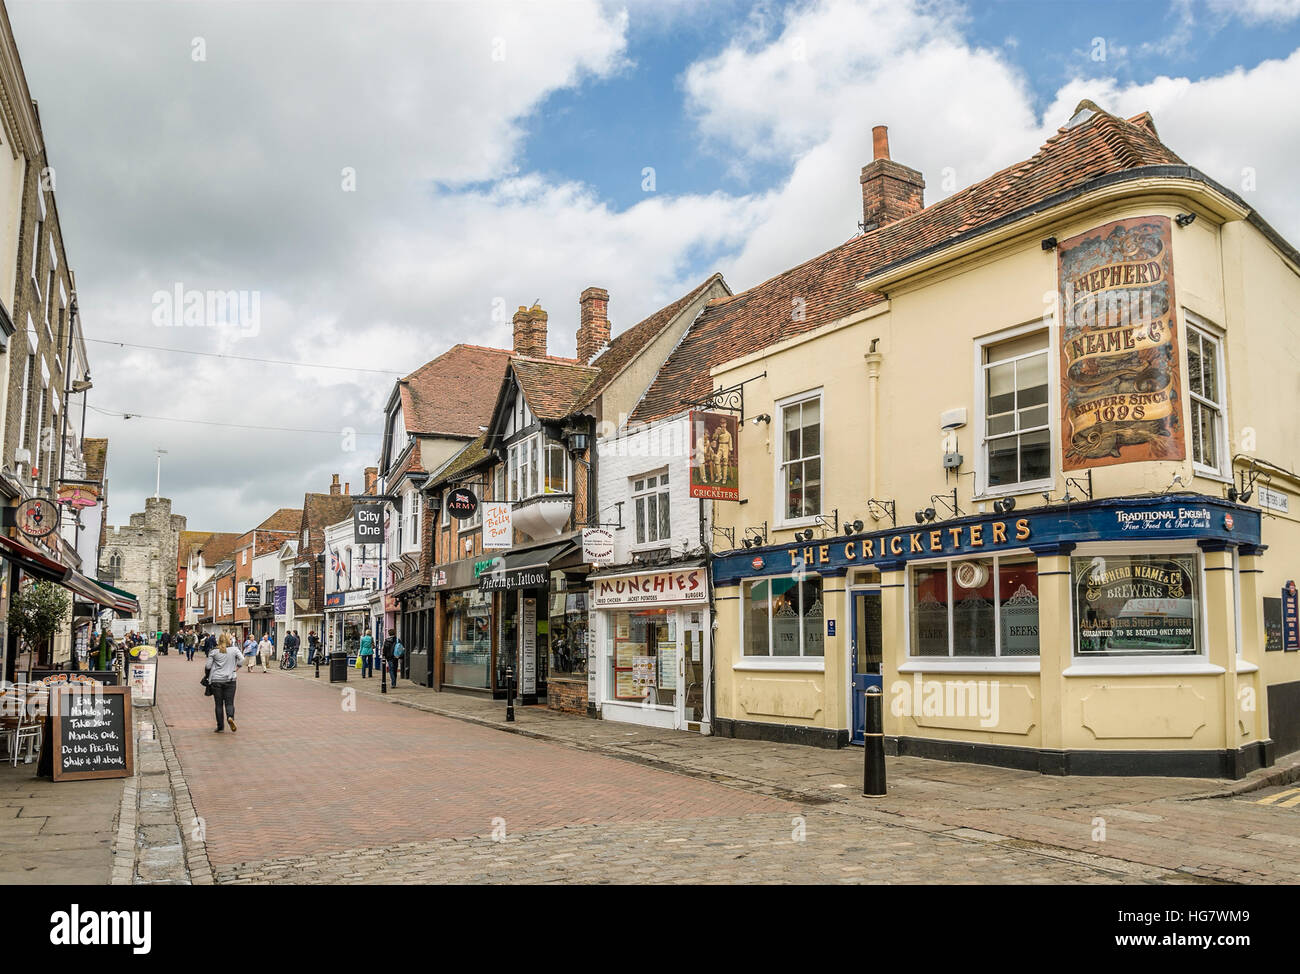 Historical Buildings and Shops in the old town center of Canterbury, in the County of Kent, South East England. - Stock Image